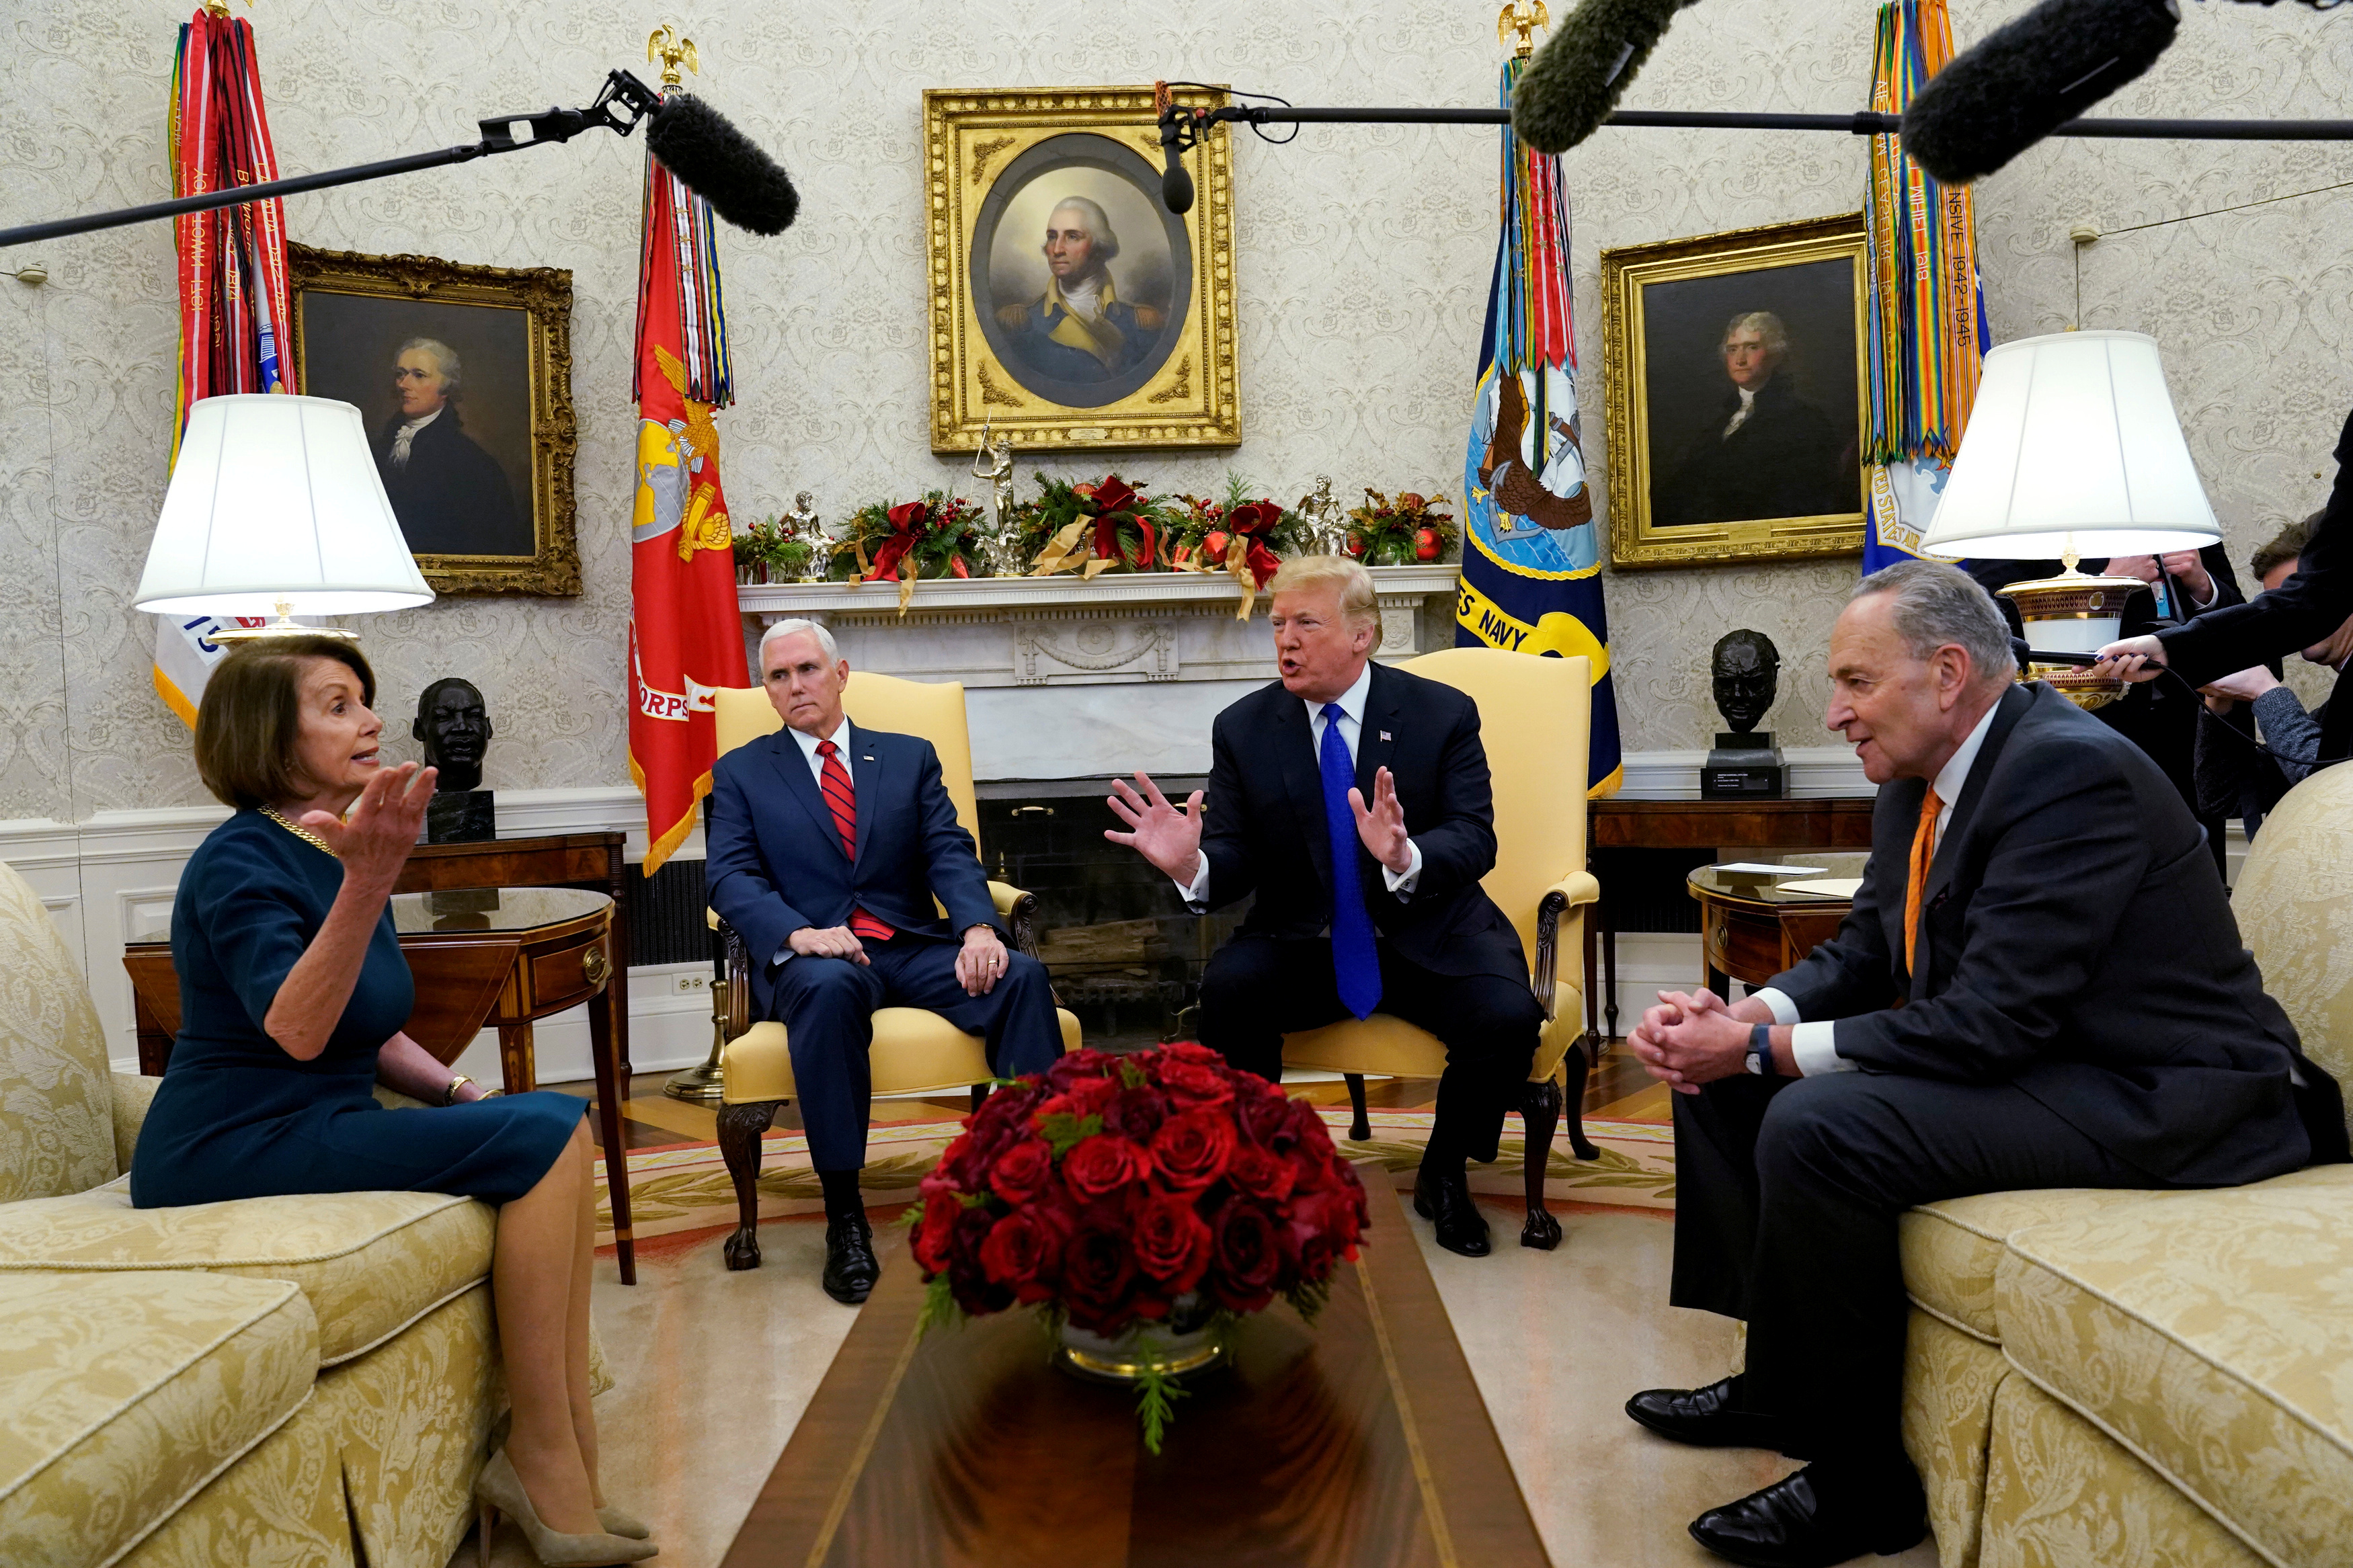 President Donald Trump speaks next to VP Mike Pence while meeting with Senate Democratic Leader Chuck Schumer and House Democratic Leader Nancy Pelosi REUTERS/Kevin Lamarque